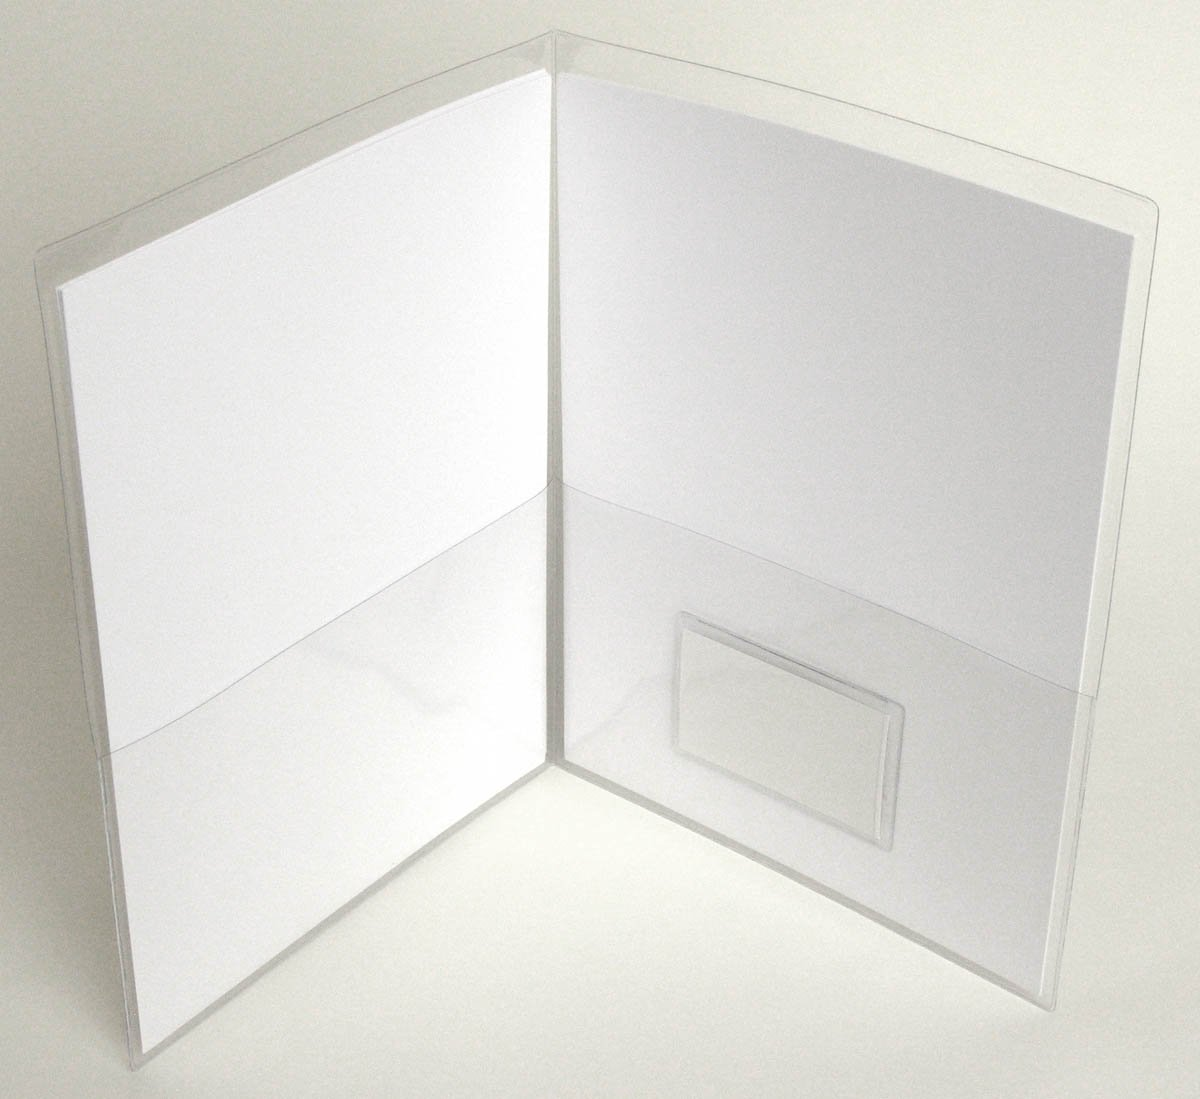 Amazon.com : StoreSMART - Clear Plastic Folder with 2 pockets - with ...